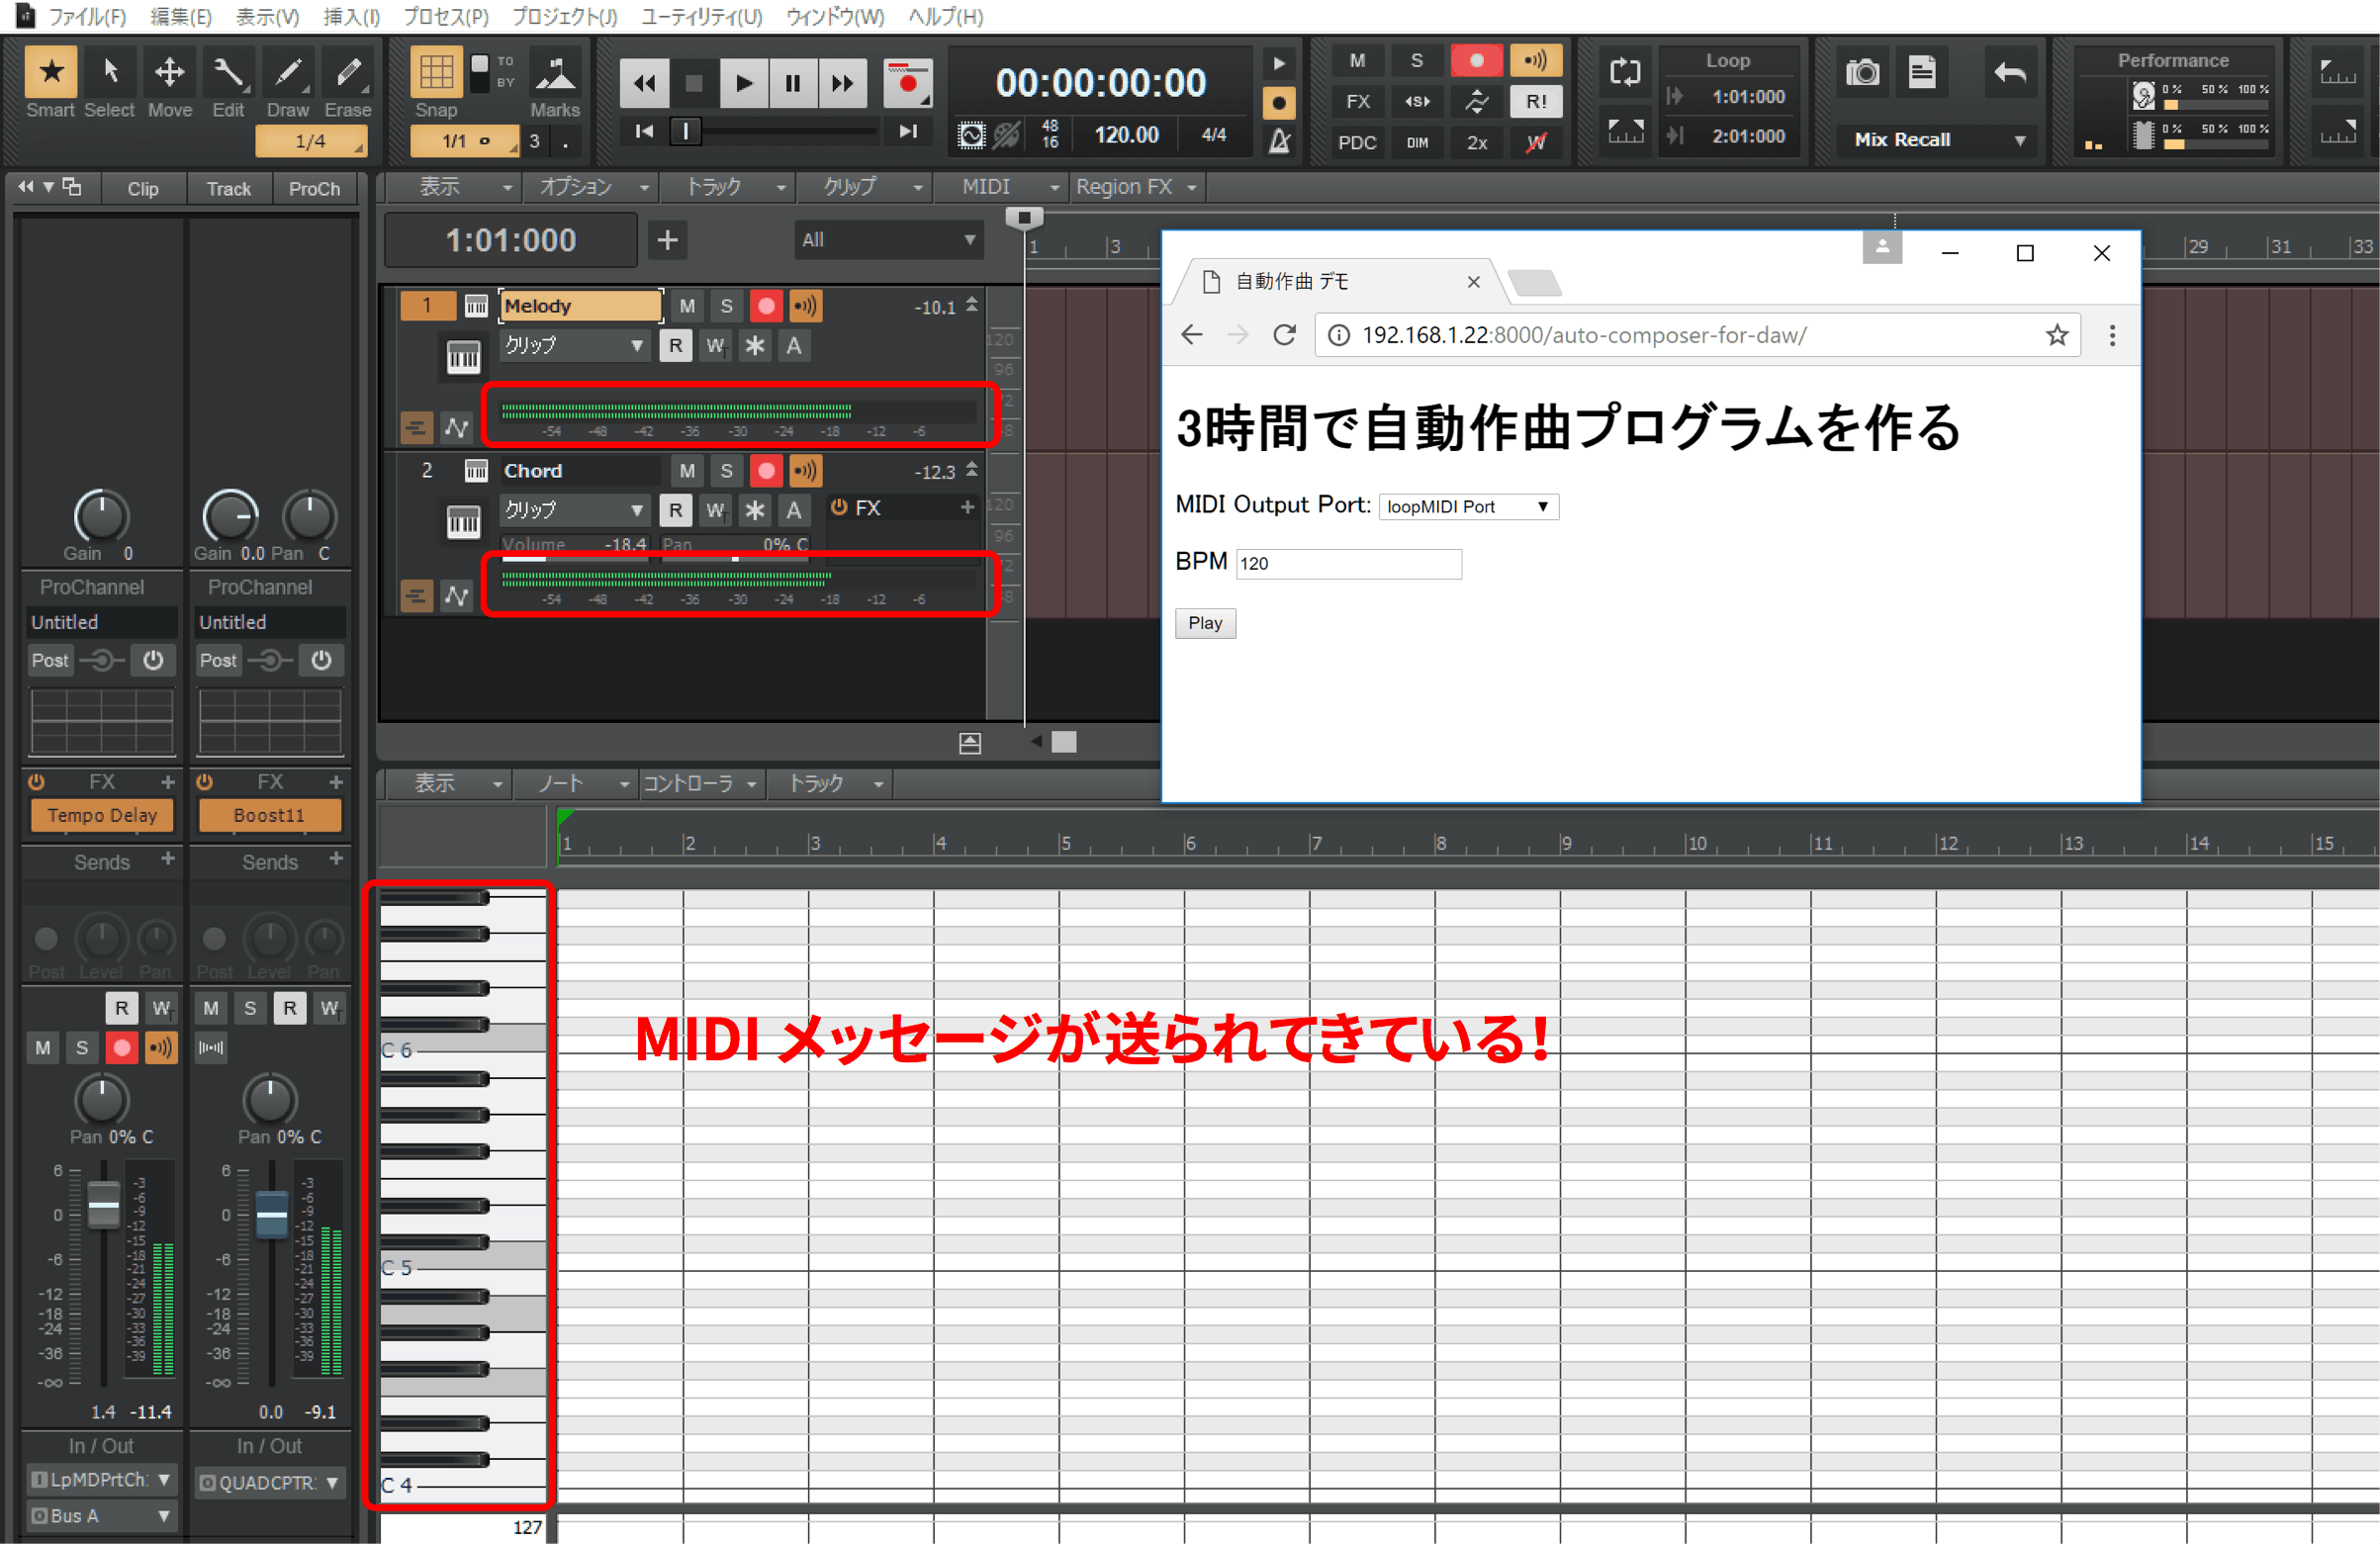 auto-composer-2.png